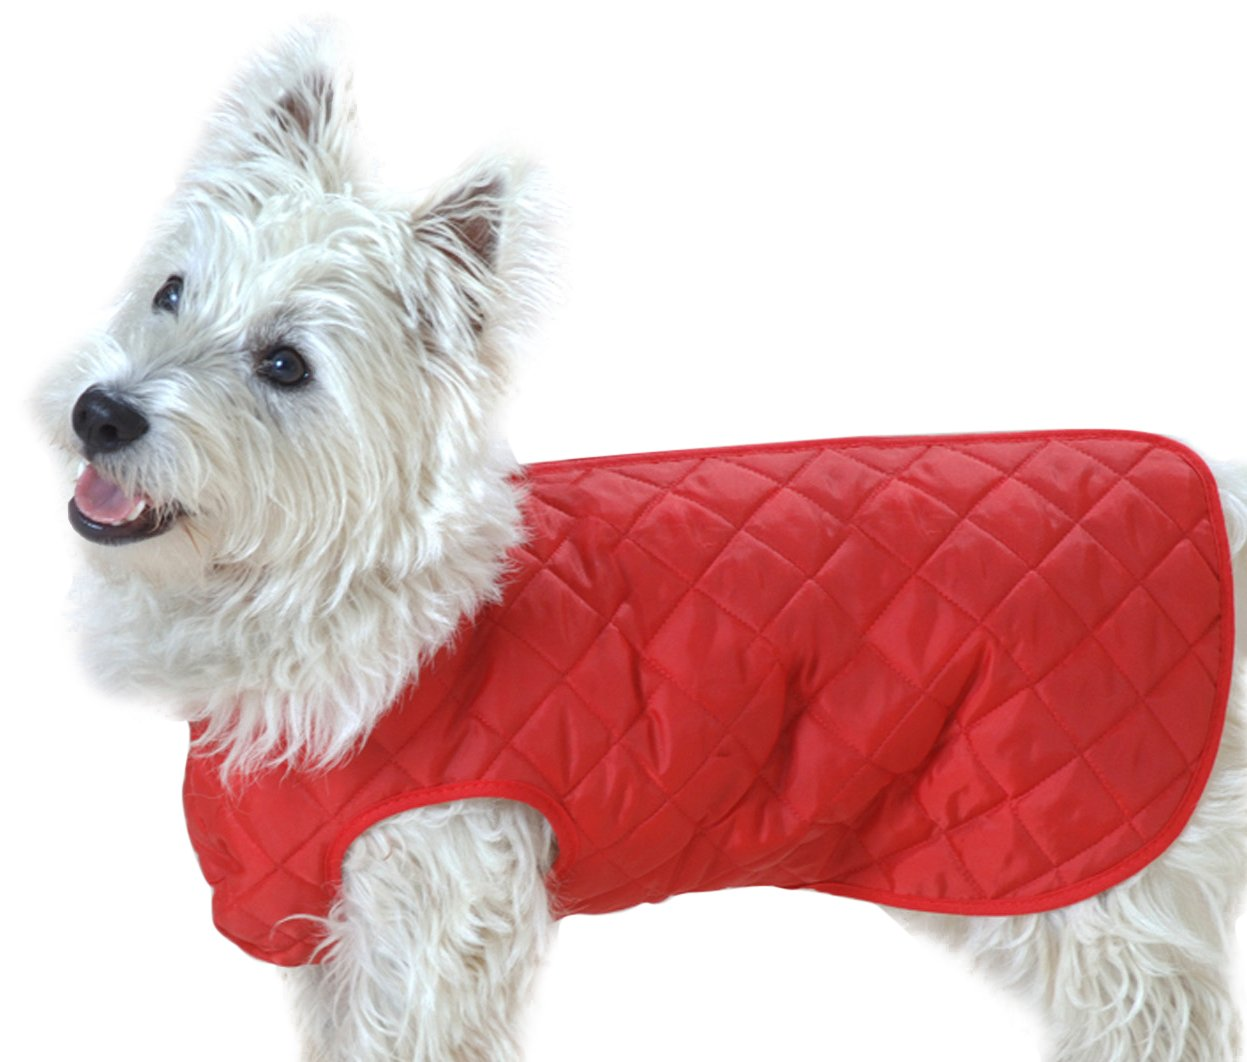 Red 22in Red 22in Cosipet Showerproof Step-In-Suit For Dogs (22in) (Red)